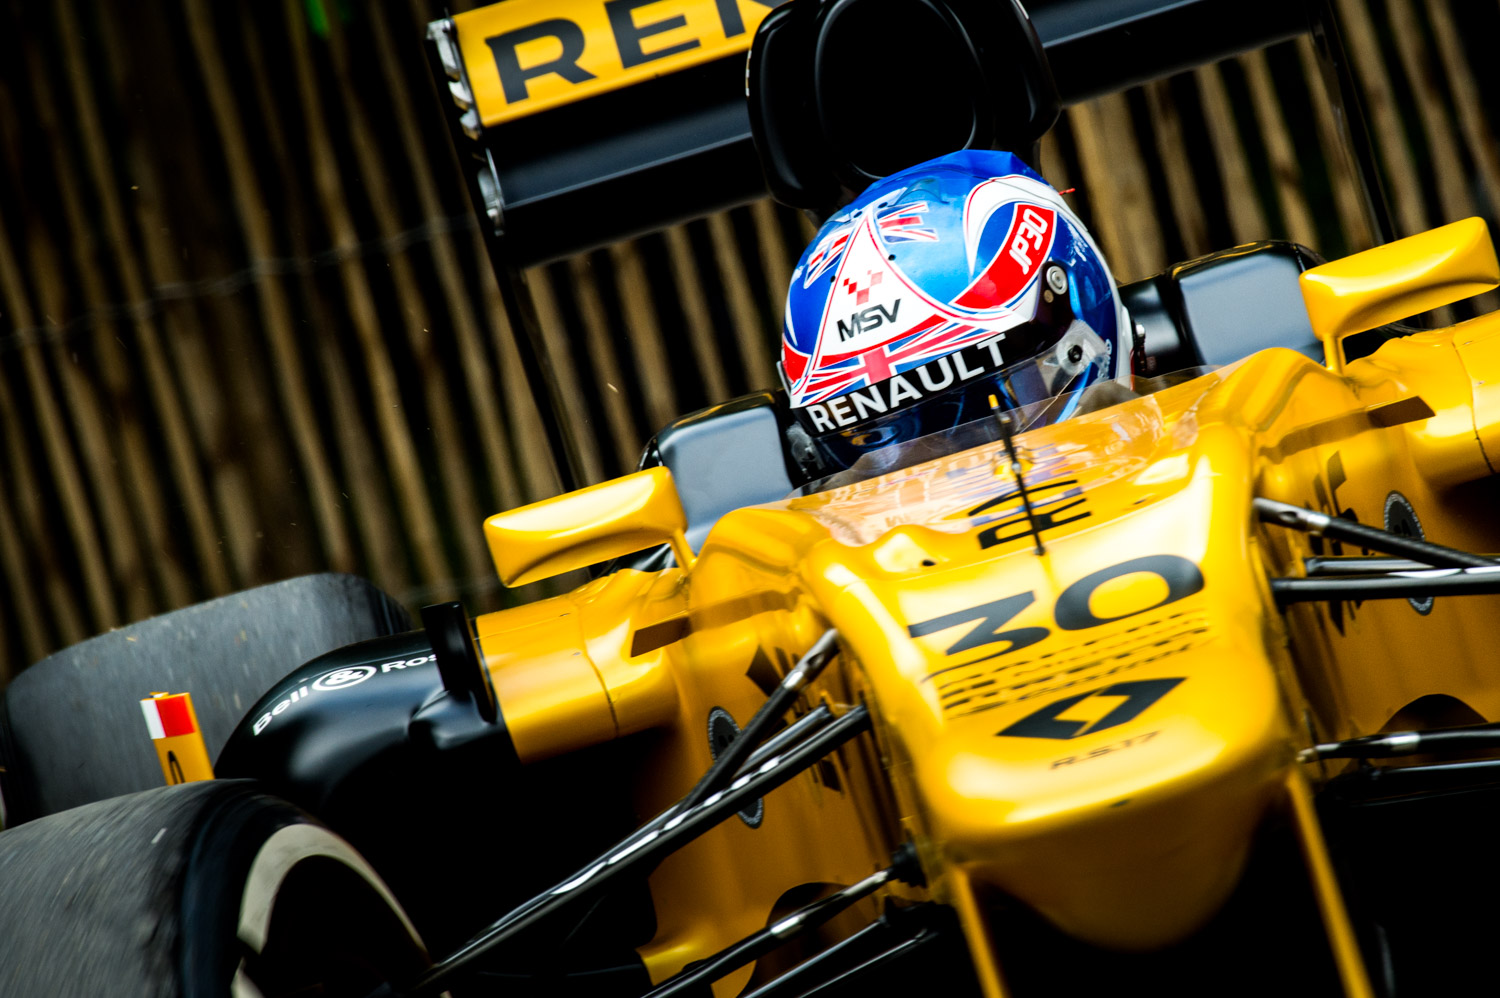 Jayson-Fong-Photography-Form-and-function-international-Renault-F1.jpg